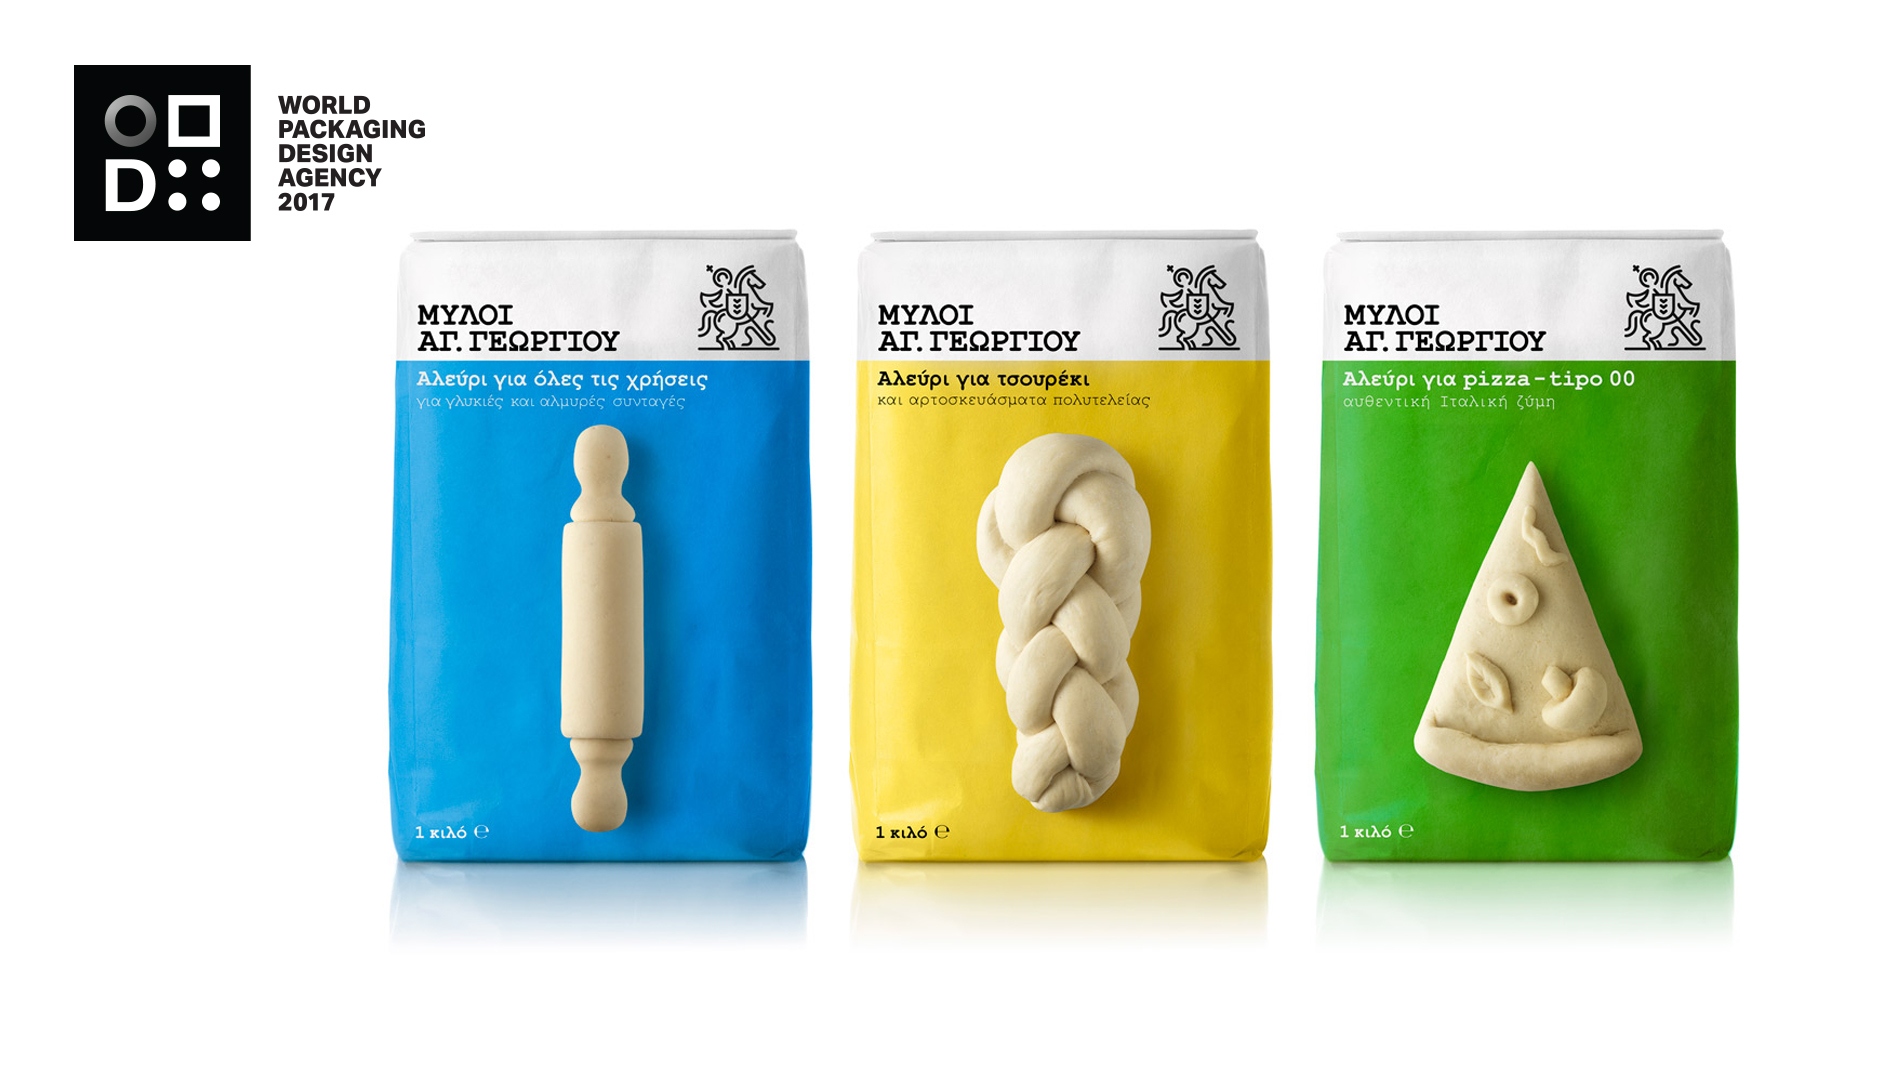 3-mousegraphics-world-packaging-design-society.jpg